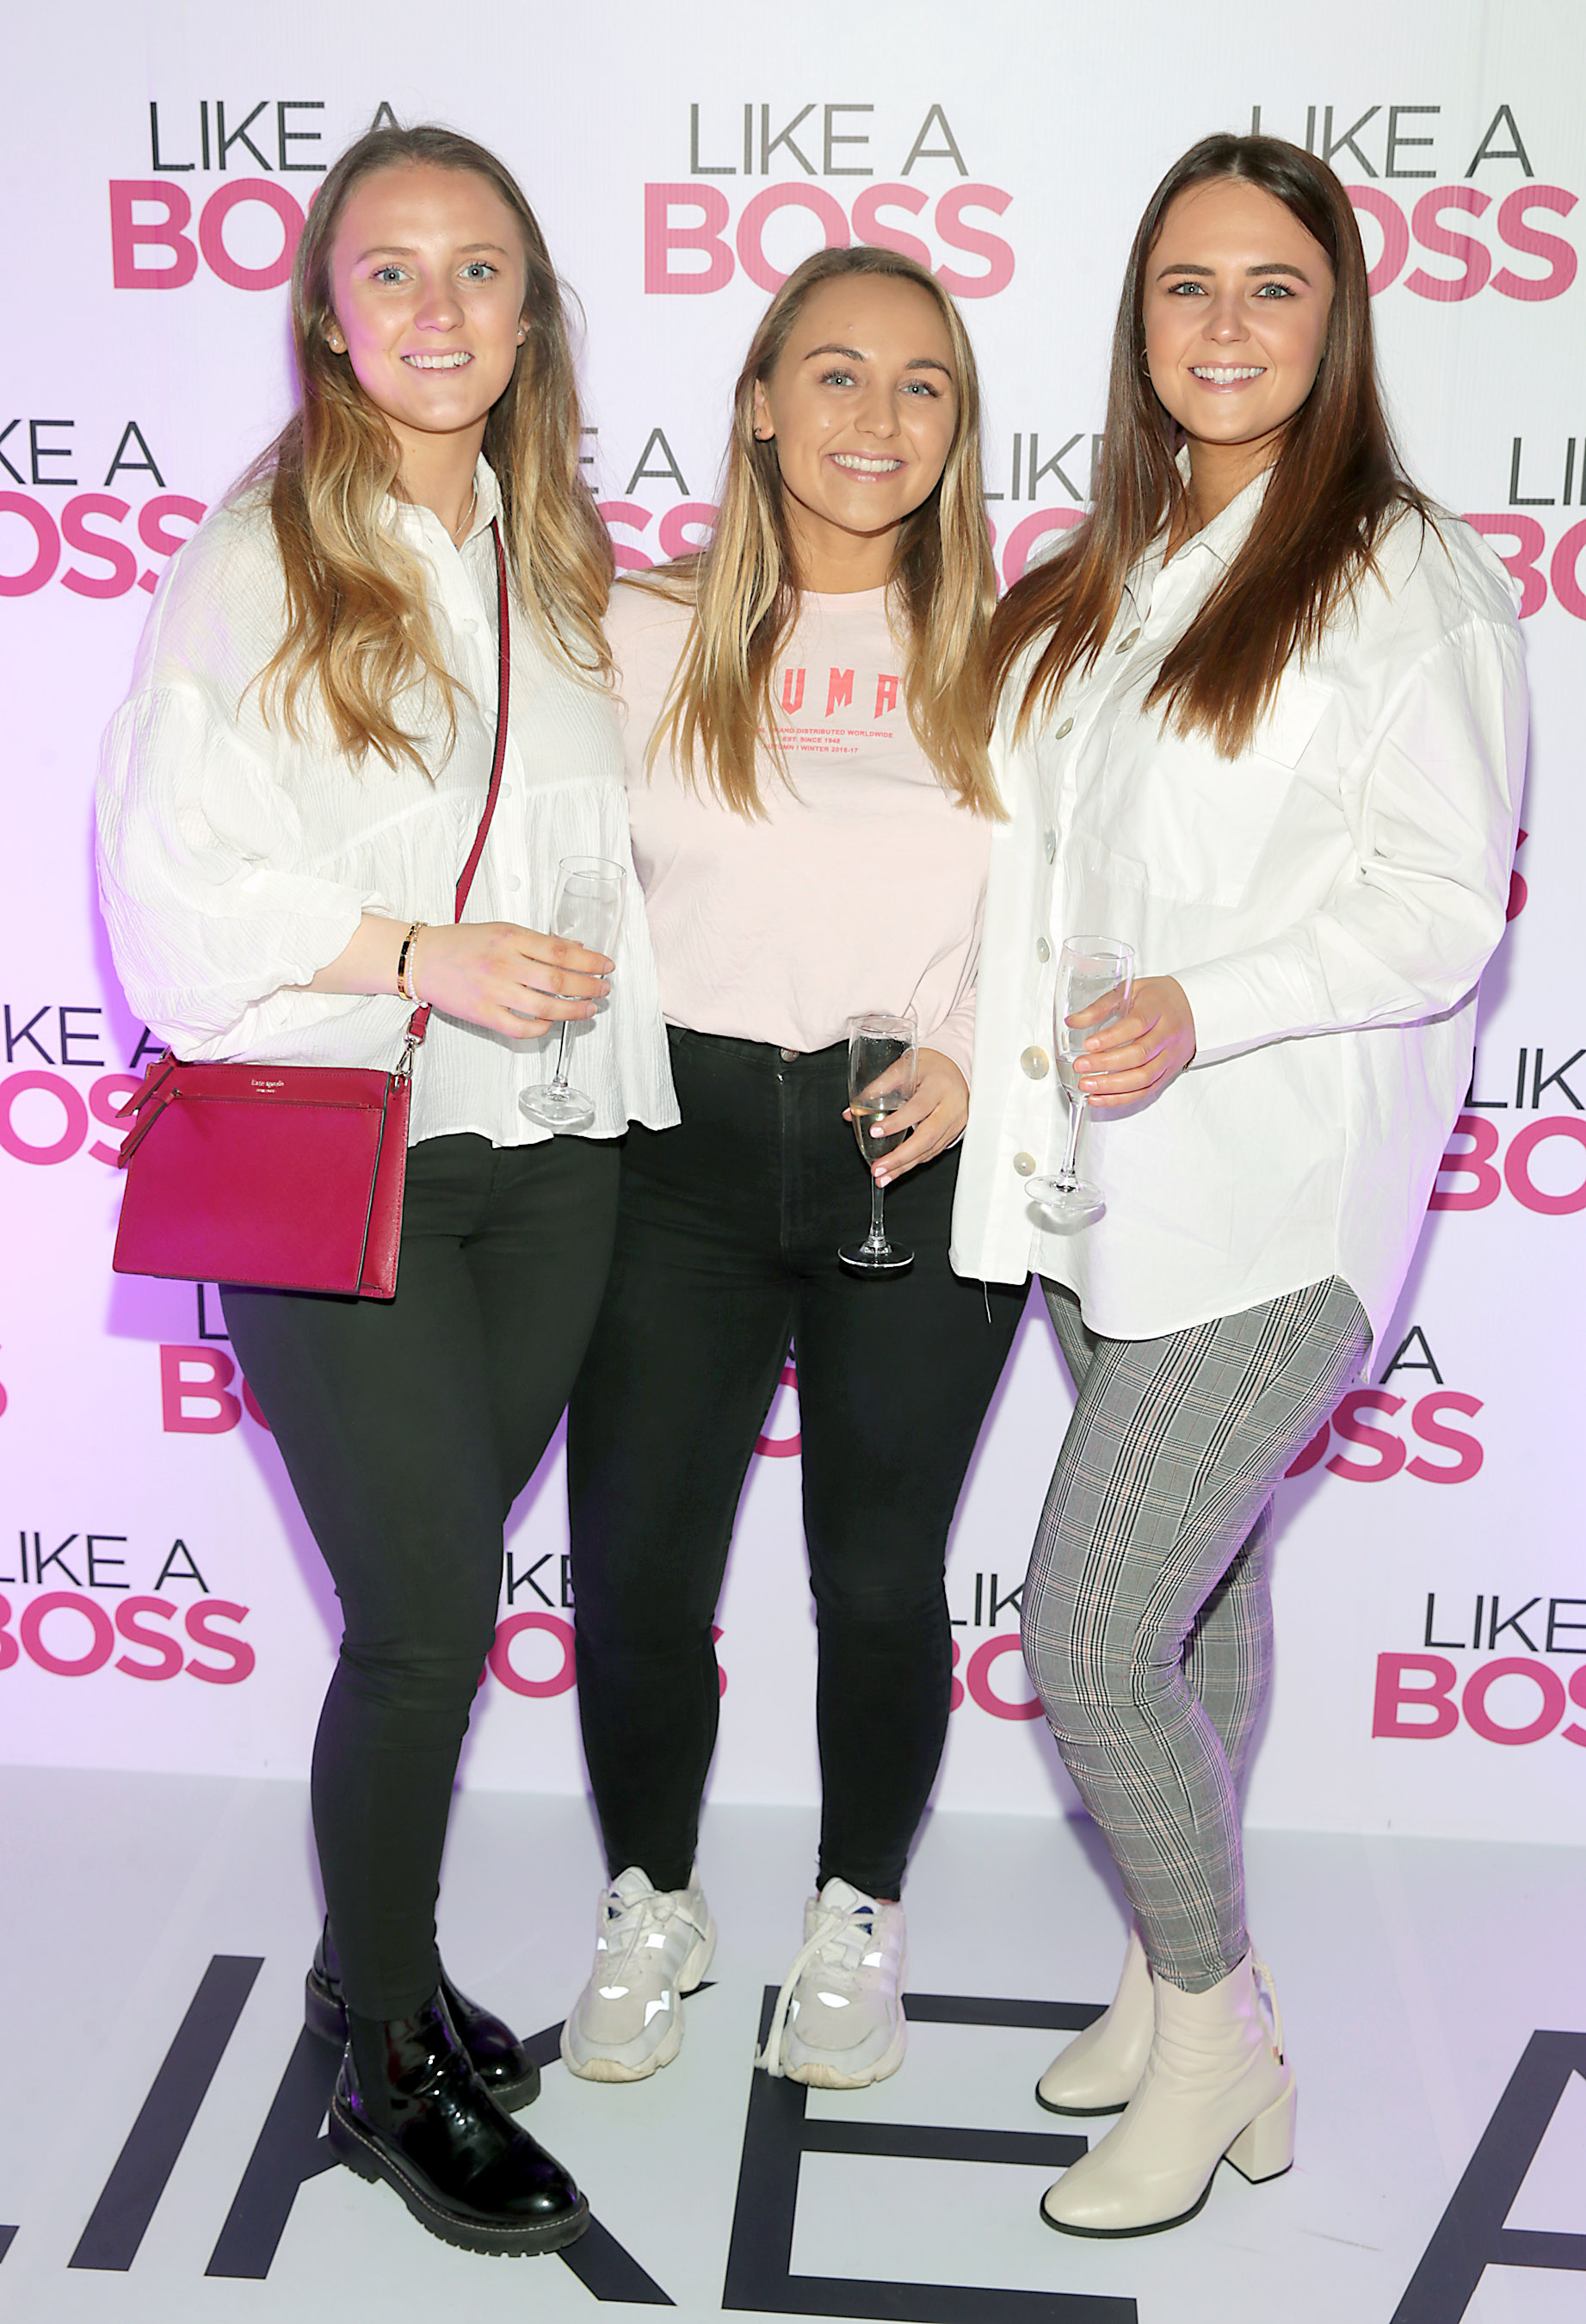 Aisling Keogh, Dervla Keogh and Eimear Keogh at the special preview screening of Like A Boss at the Lighthouse Cinema, Dublin. Pic: Brian McEvoy